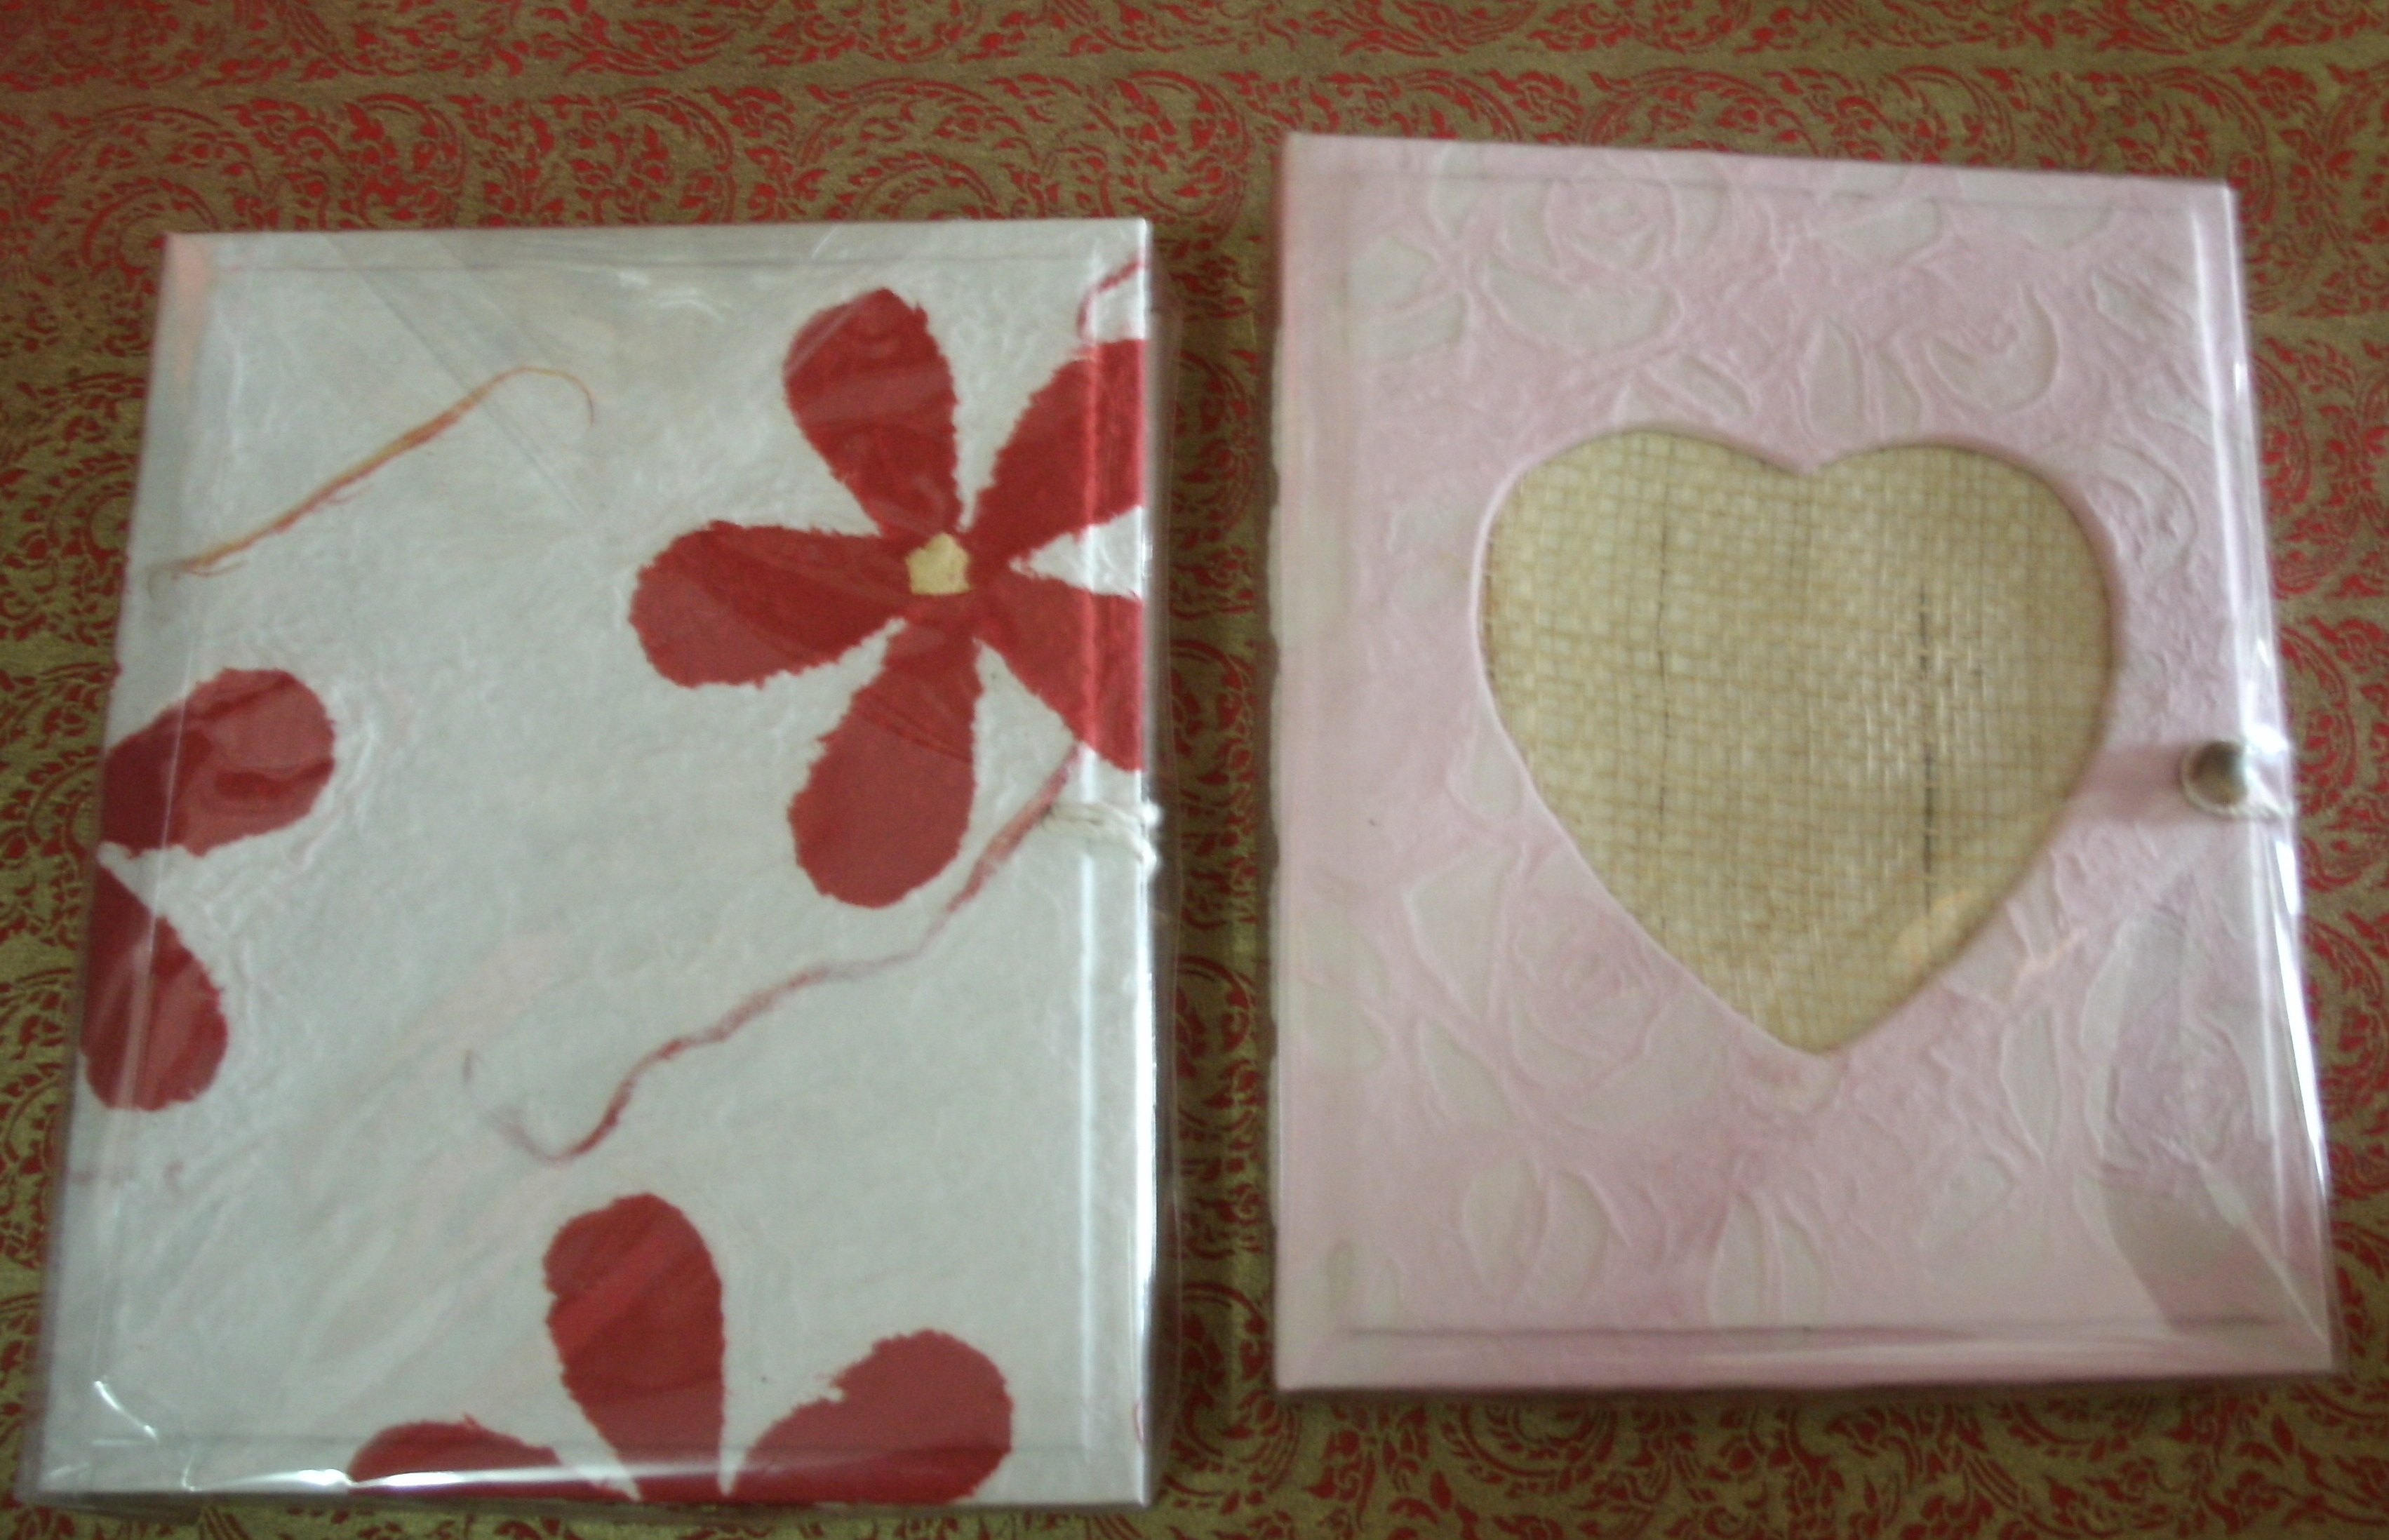 Sign Book made of mulberry paper